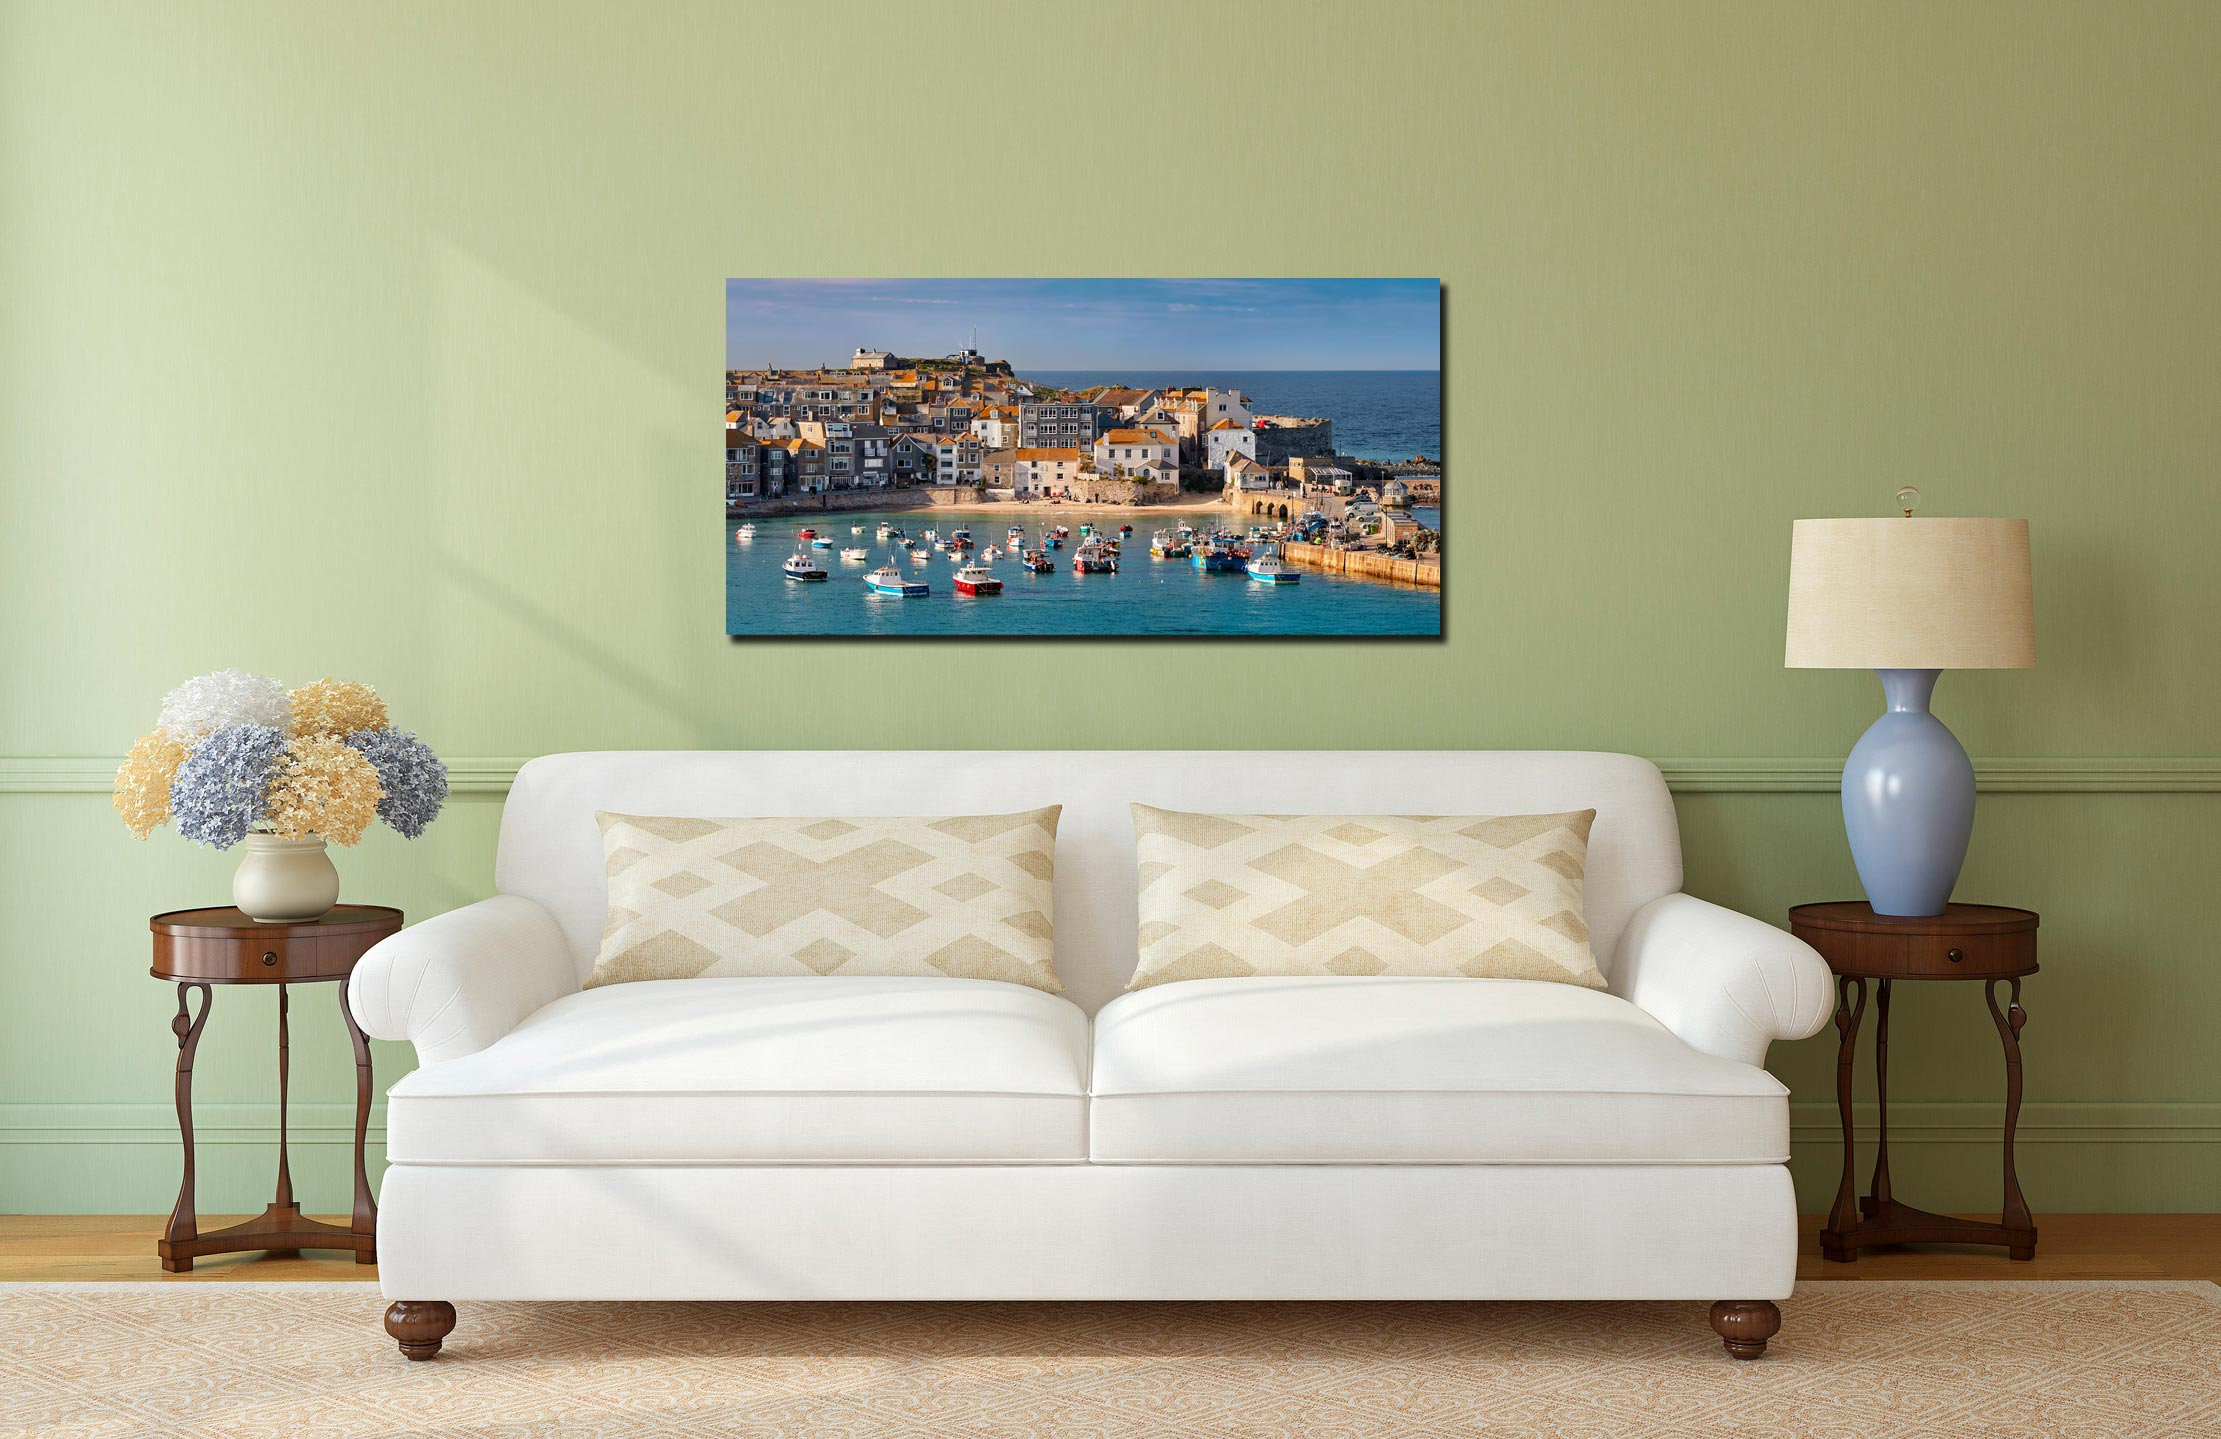 St Ives Harbour Beach - Print Aluminium Backing With Acrylic Glazing on Wall